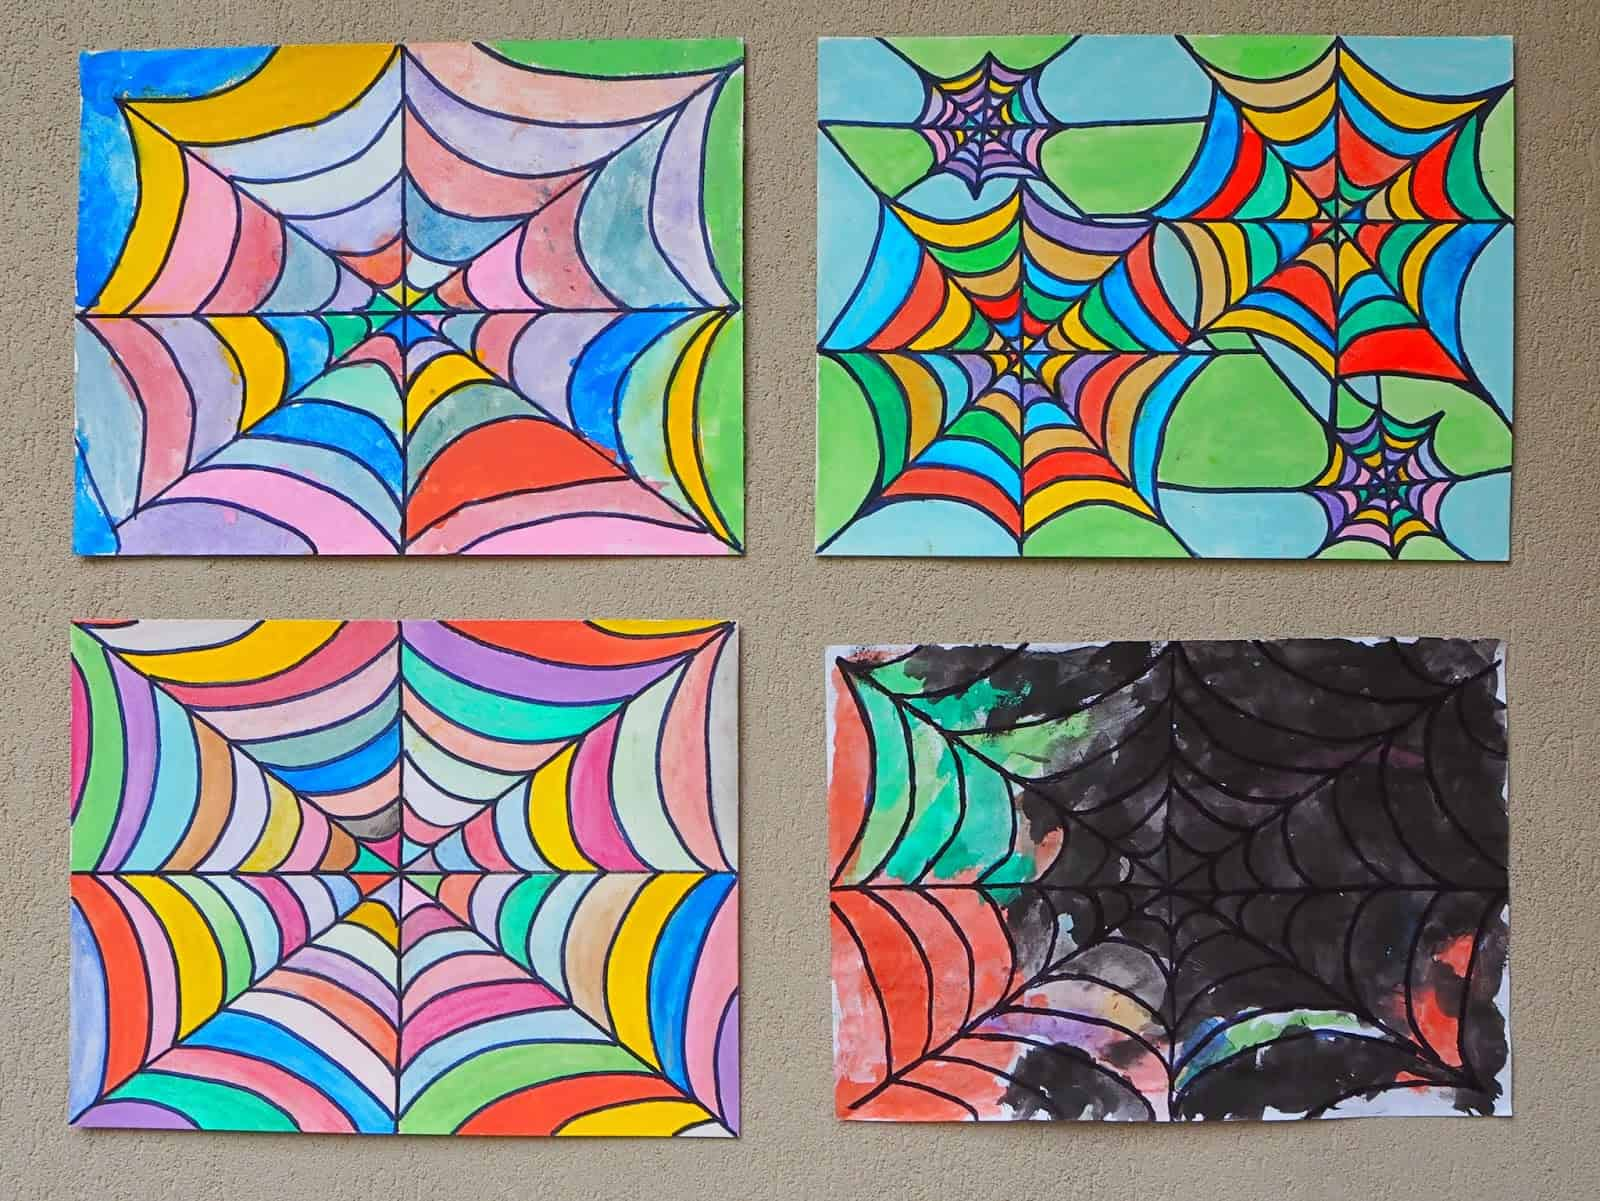 Technicolour spider web drawings